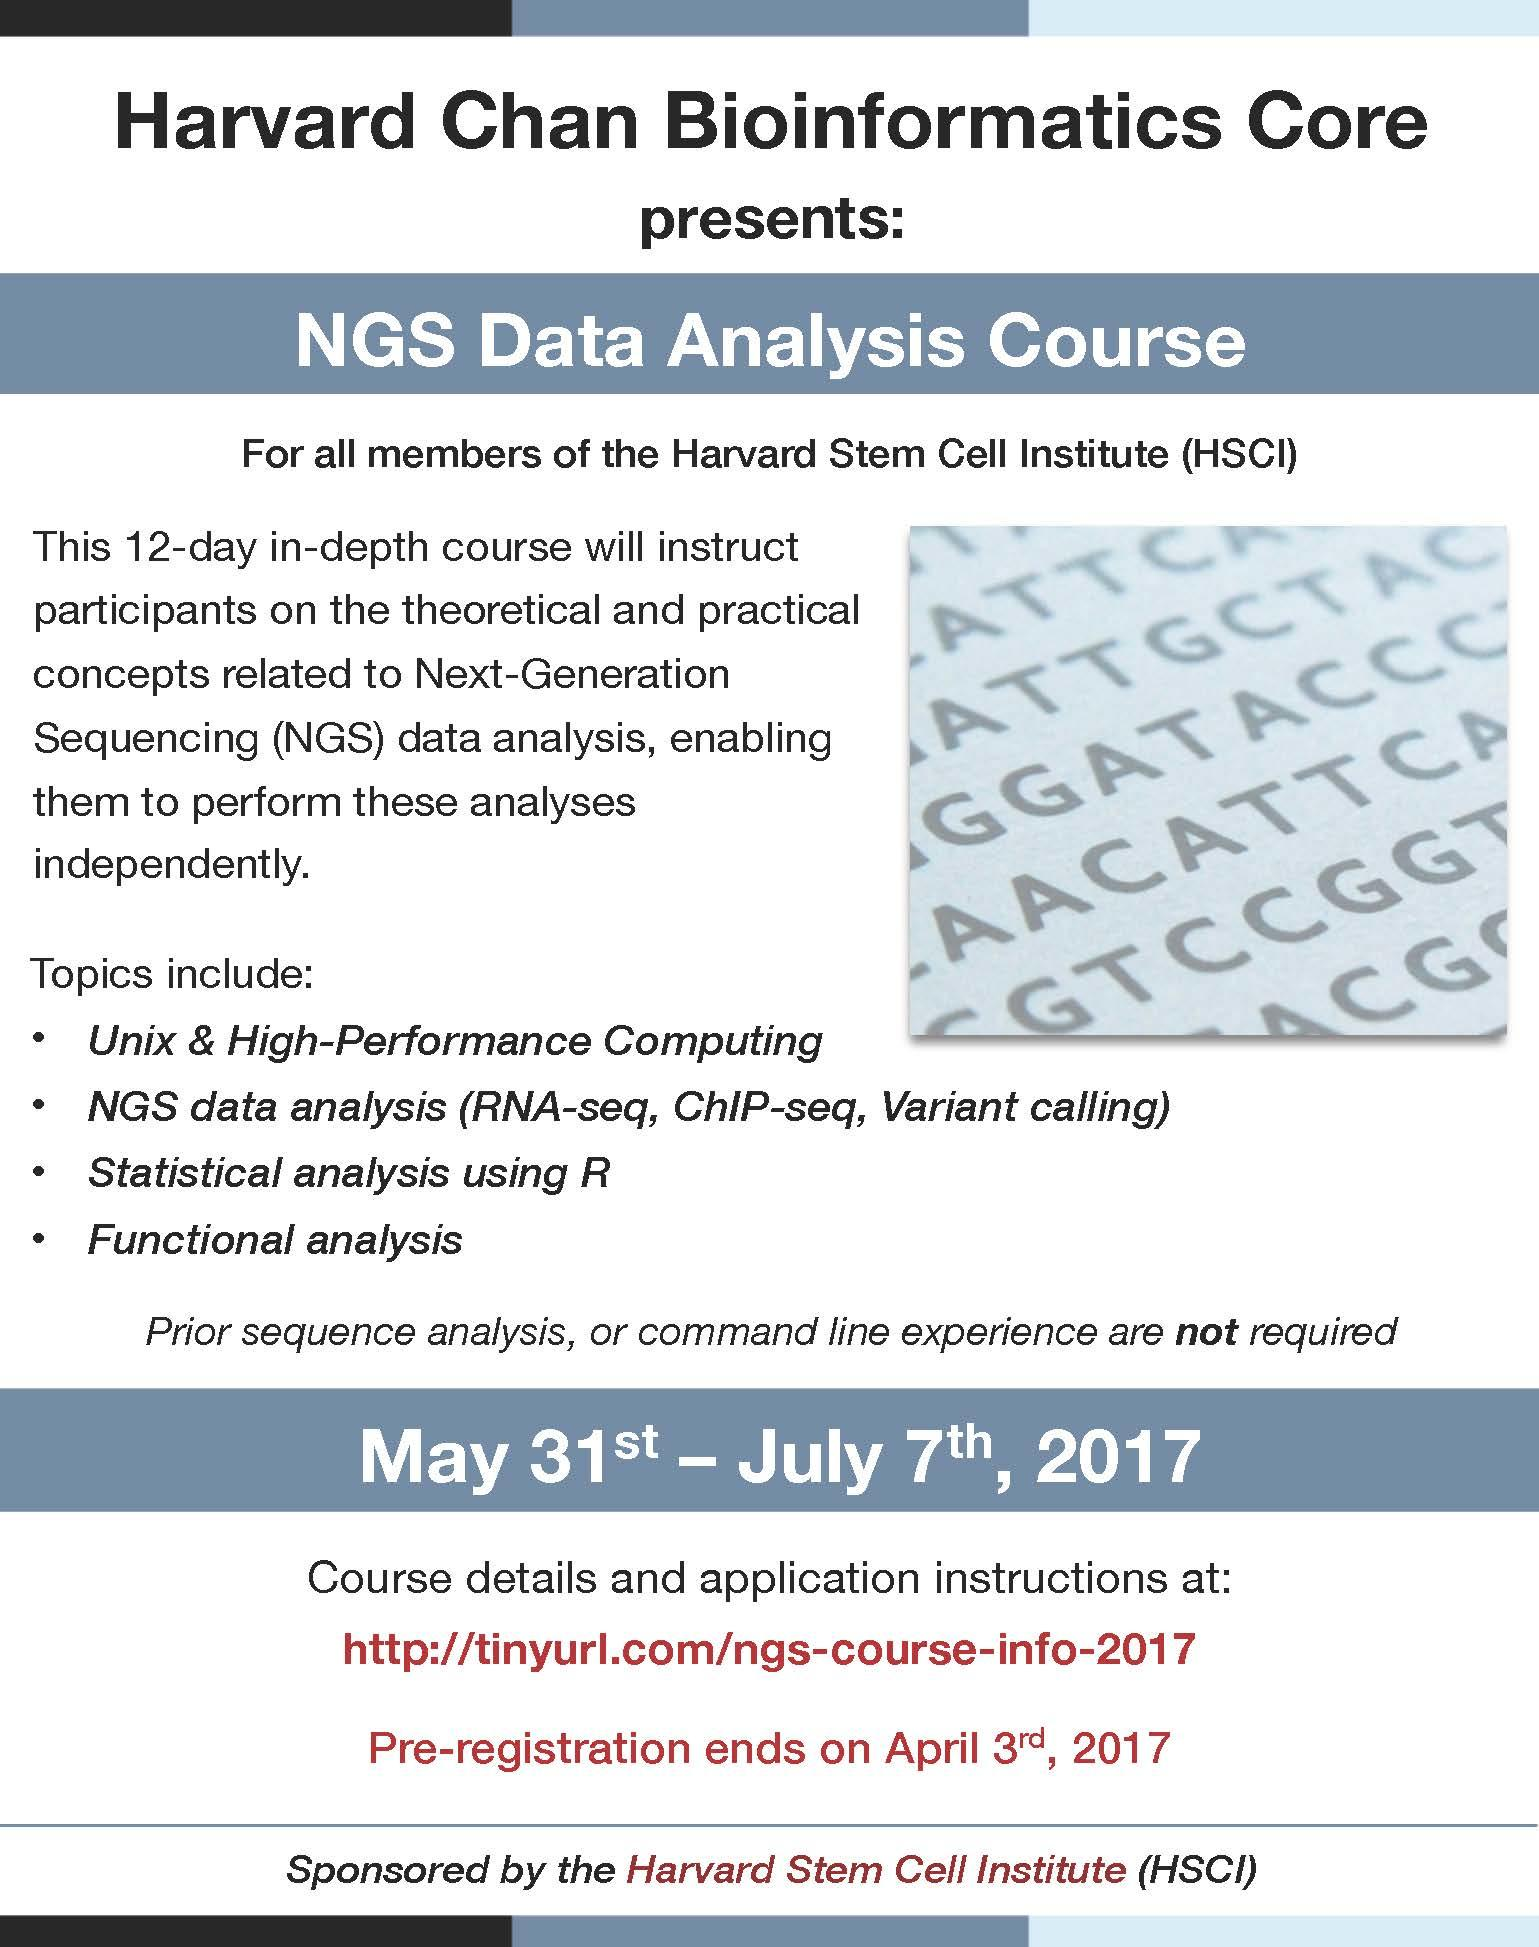 NGS Course Announcement flyer